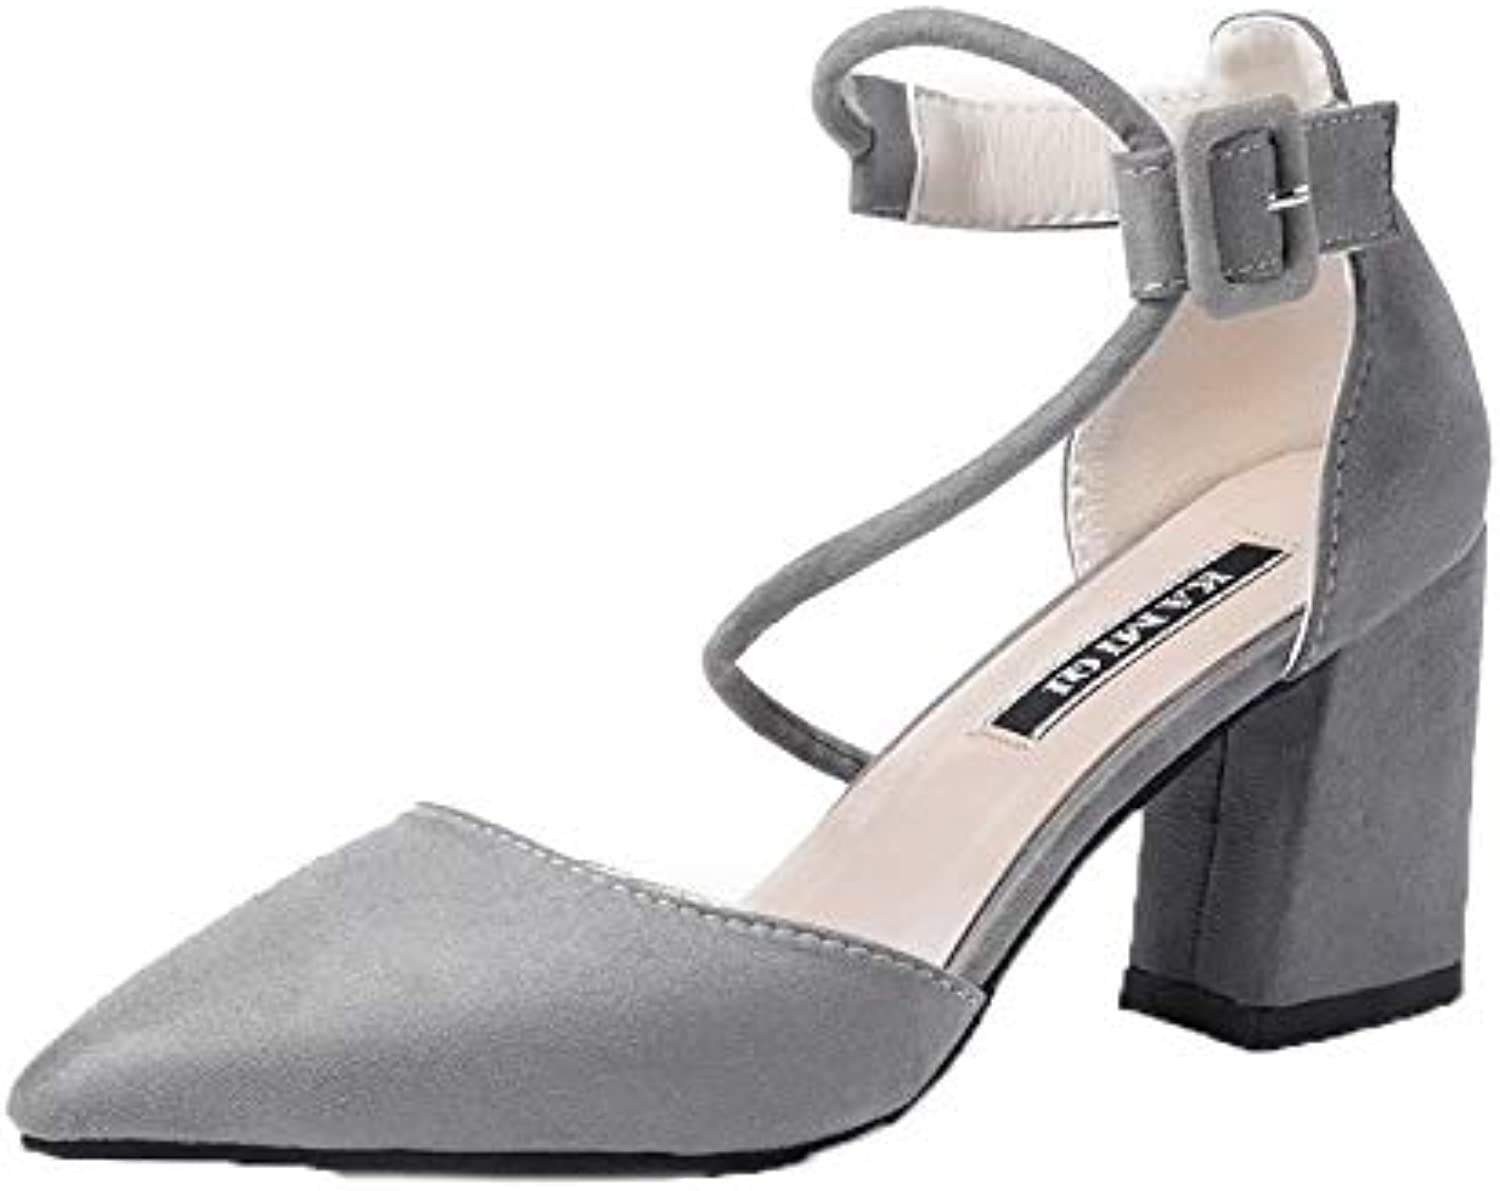 AllhqFashion Women's Hook-and-Loop Closed-Toe High-Heels Imitated Suede Sandals, FBULC013030